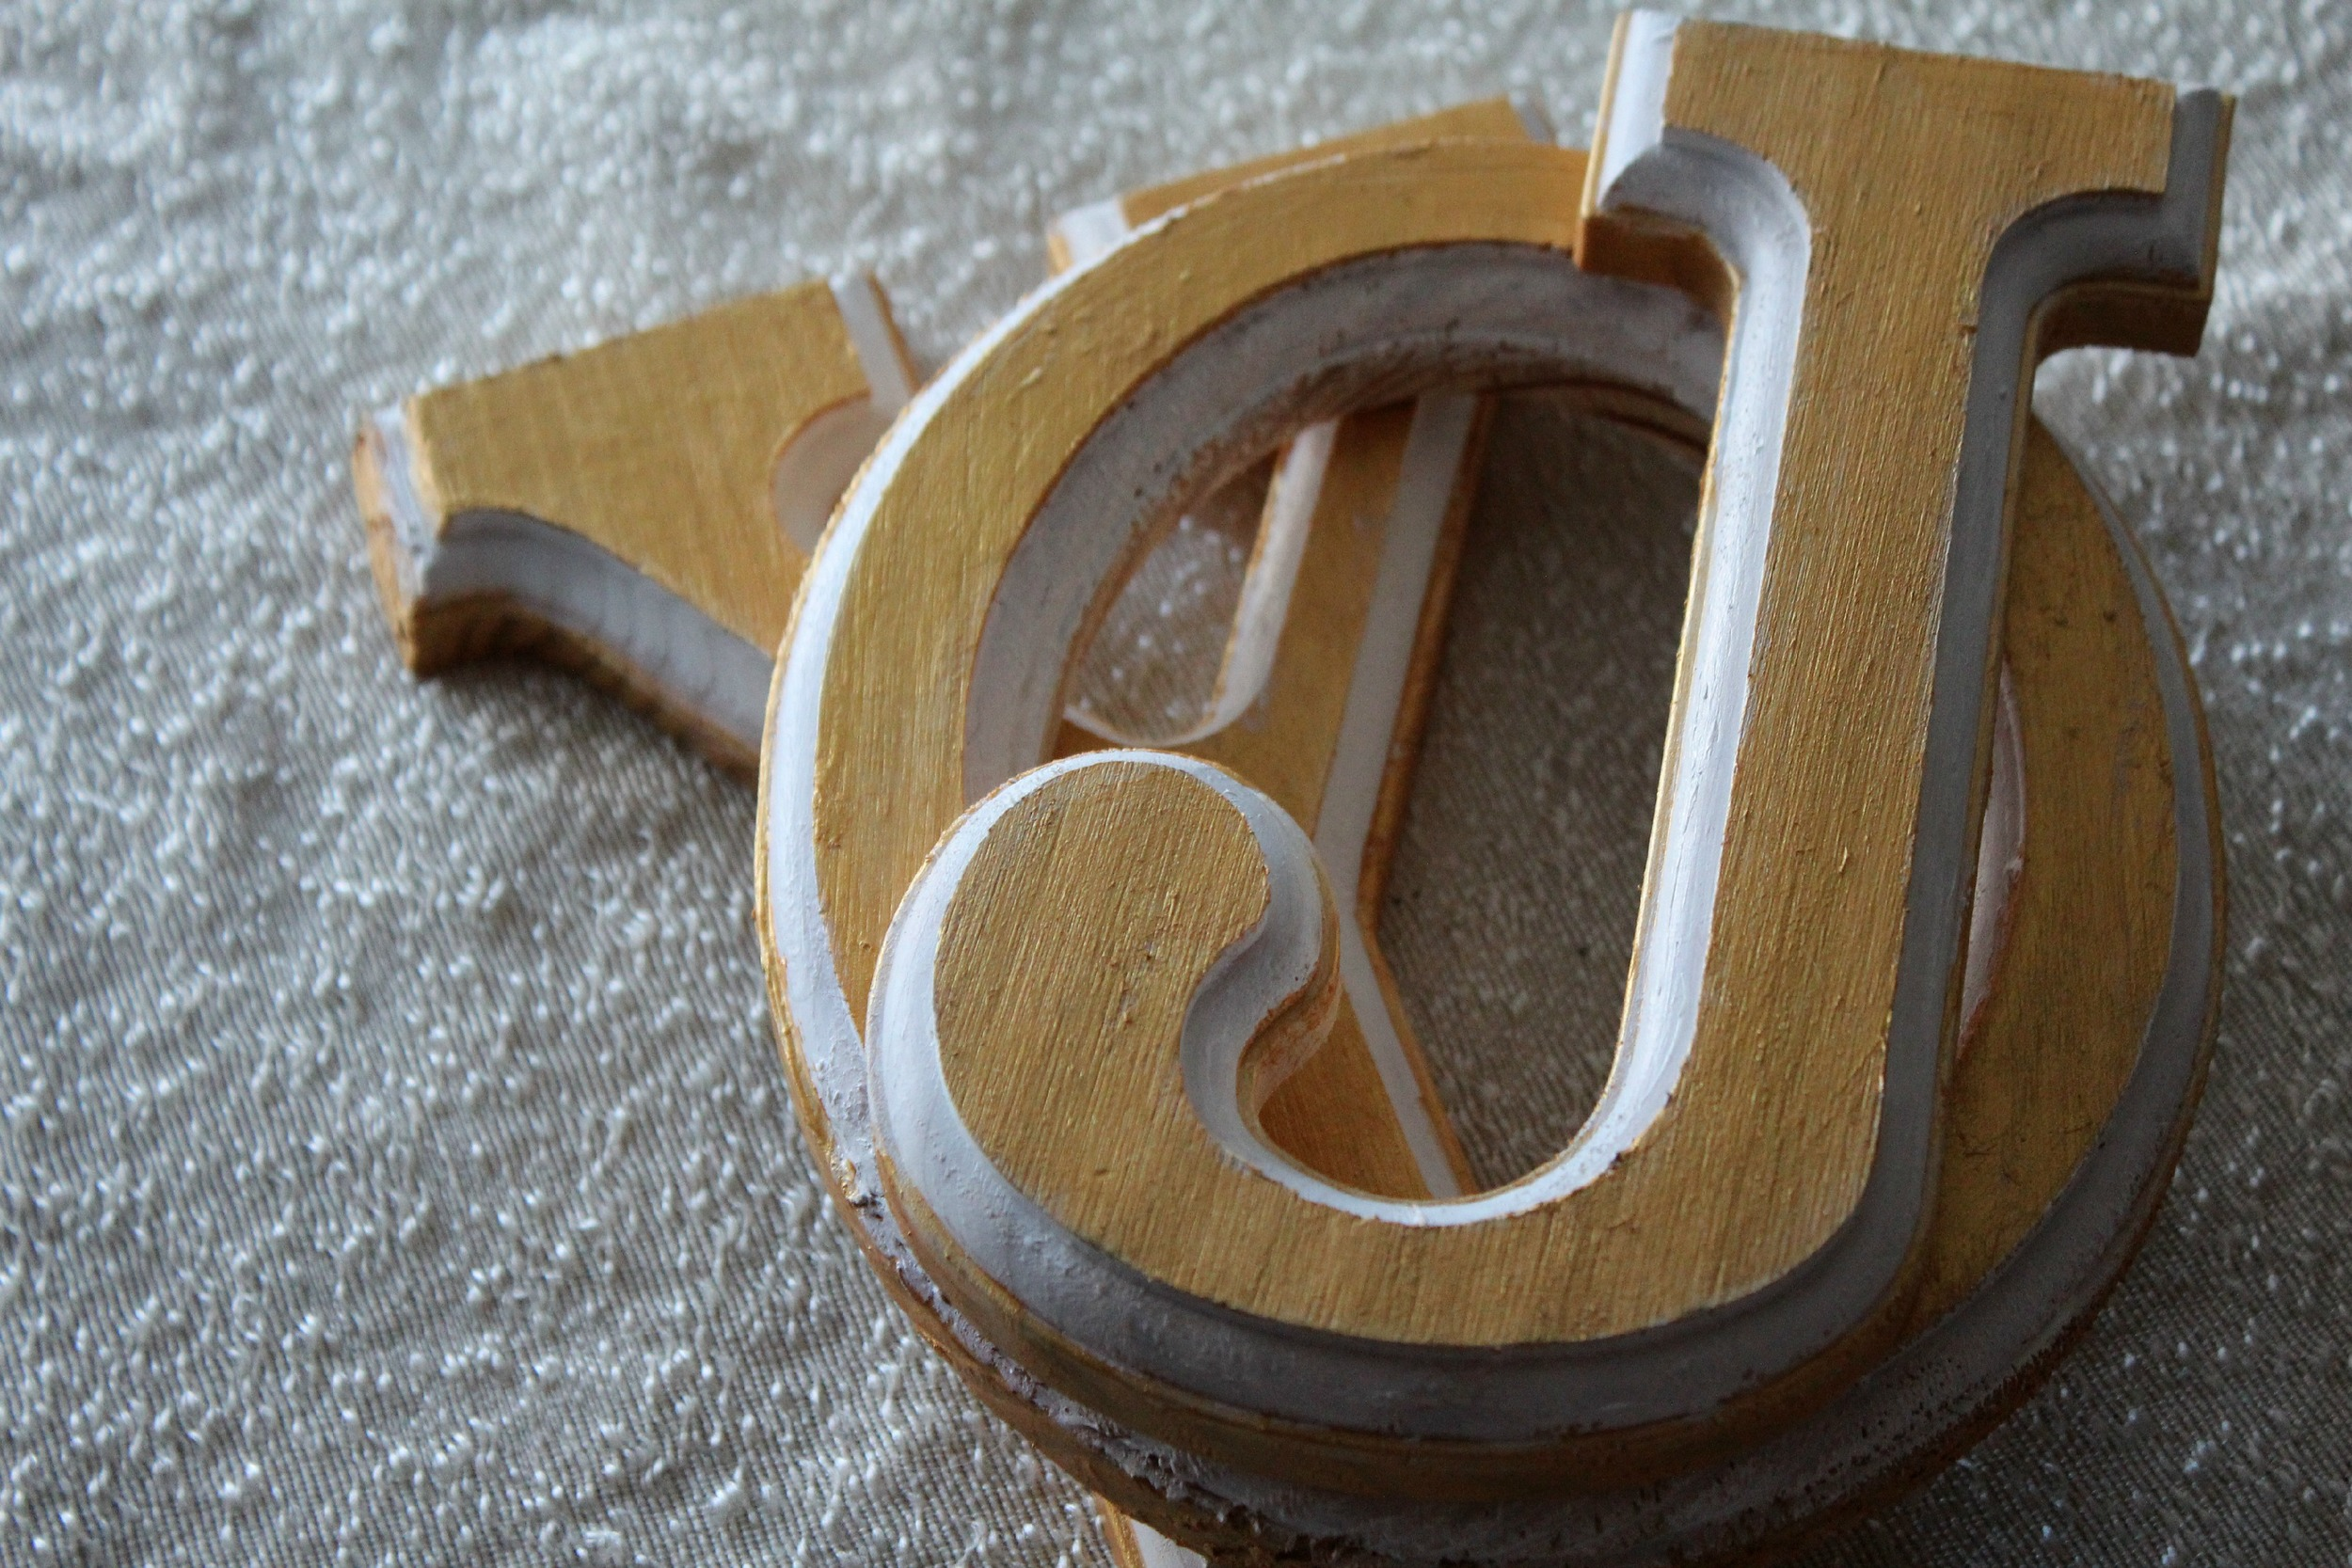 Hand painted wooden letters from Hobby lobby.